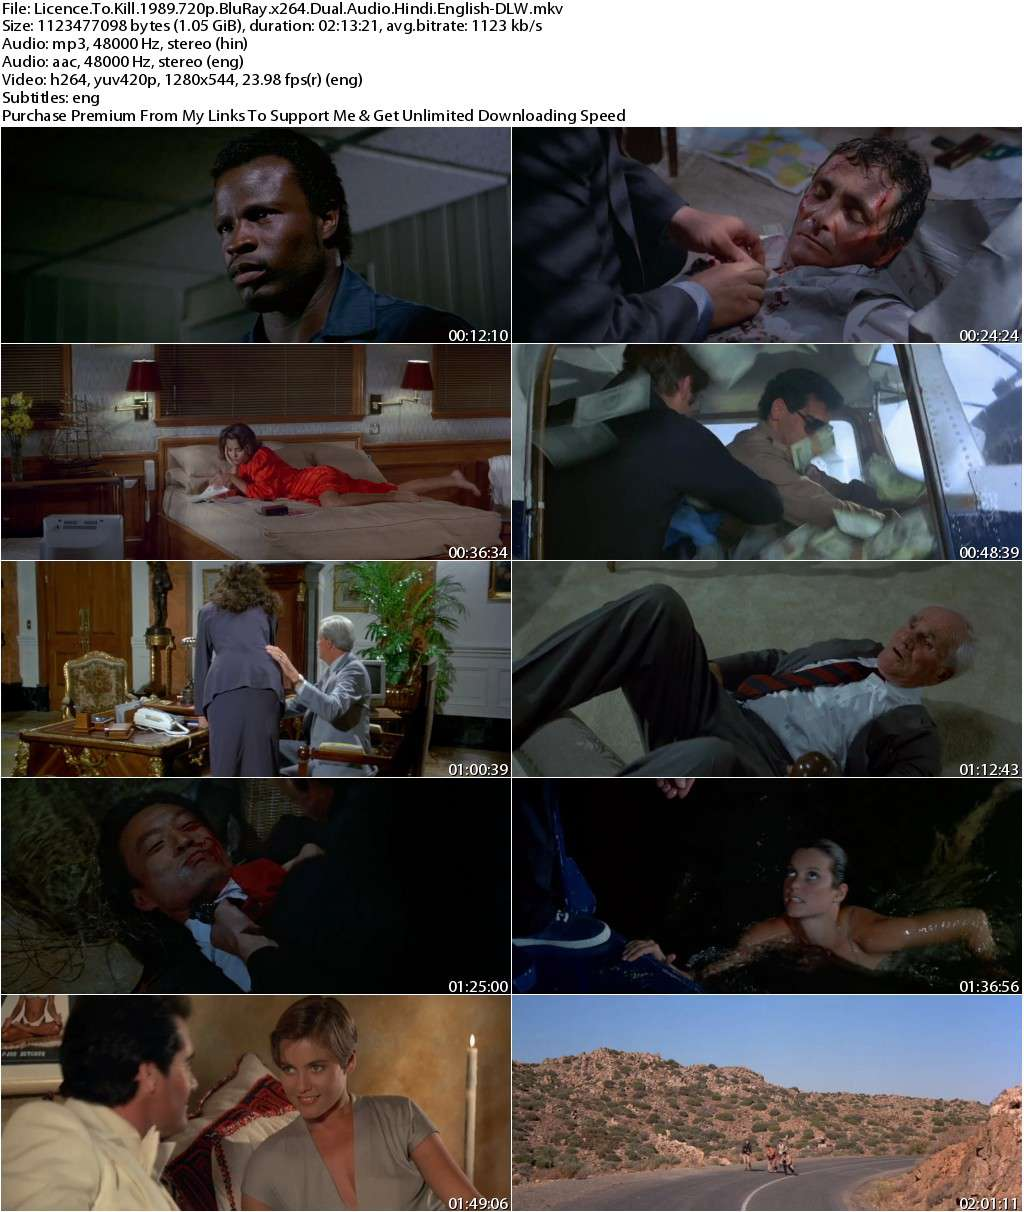 Licence To Kill (1989) 720p BluRay x264 Dual Audio [Hindi-English]-DLW